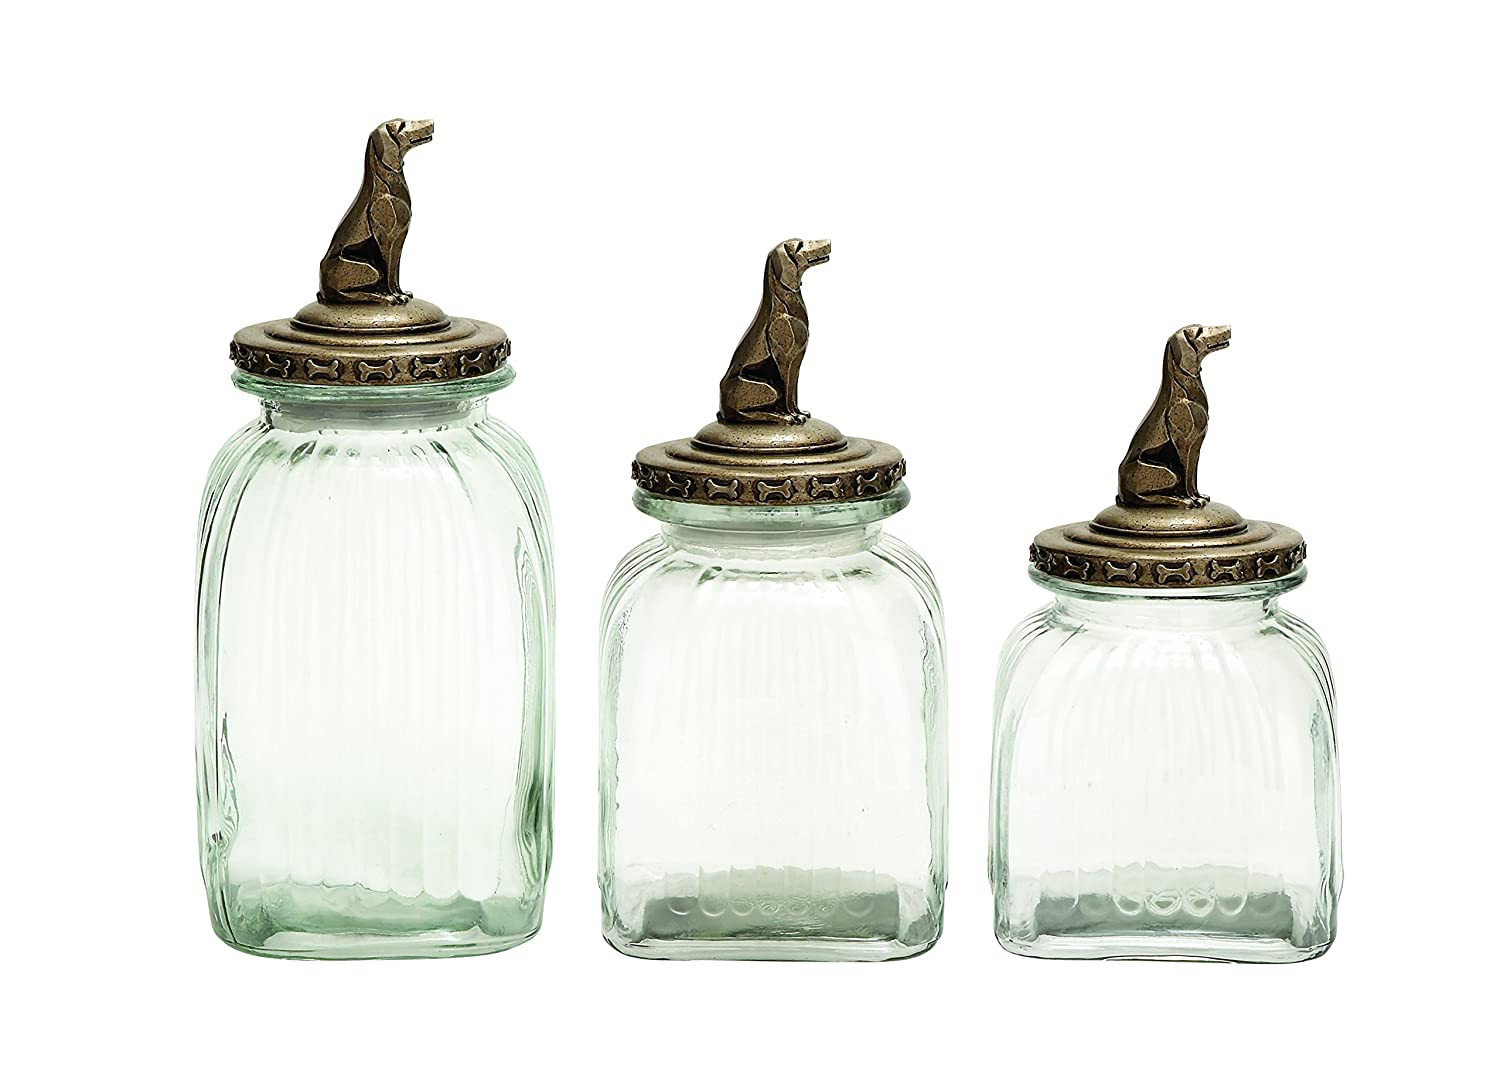 Benzara Glass Canister with Dog Figure on Lid, Elegant Finish, Set of 3 54804